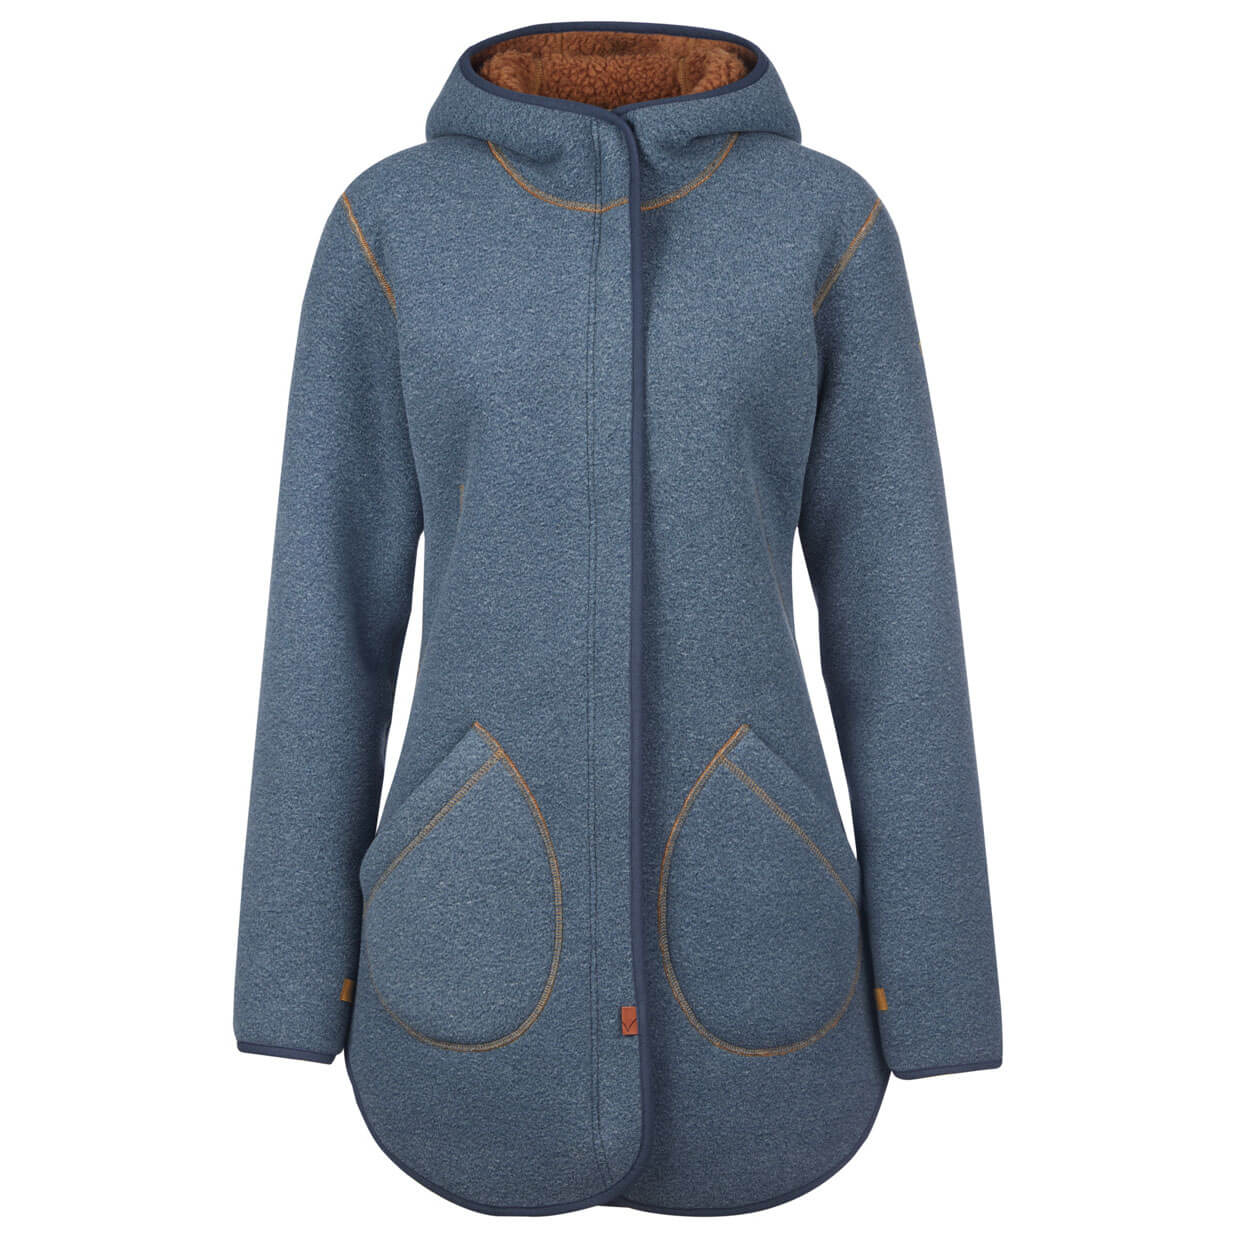 The hi-loft fleece is soft and comfortable, and the jacket is very warm for its weight. The cut is roomy enough to wear over a base layer, and it still fit well under our winter jacket .